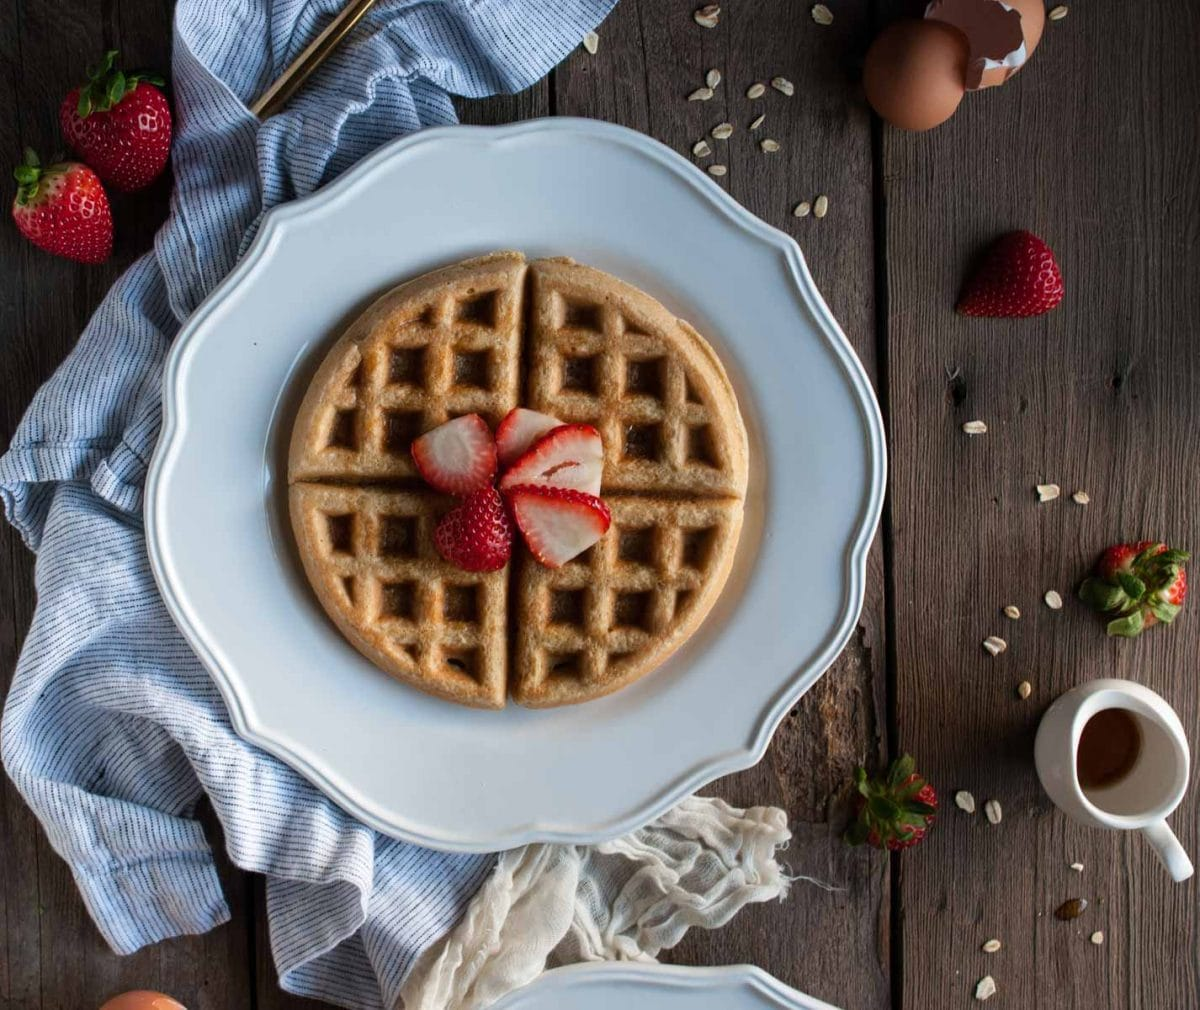 Oat flour waffles are naturally gluten free and have an added protein kick from almond flour and almond milk for energy to fuel your morning.